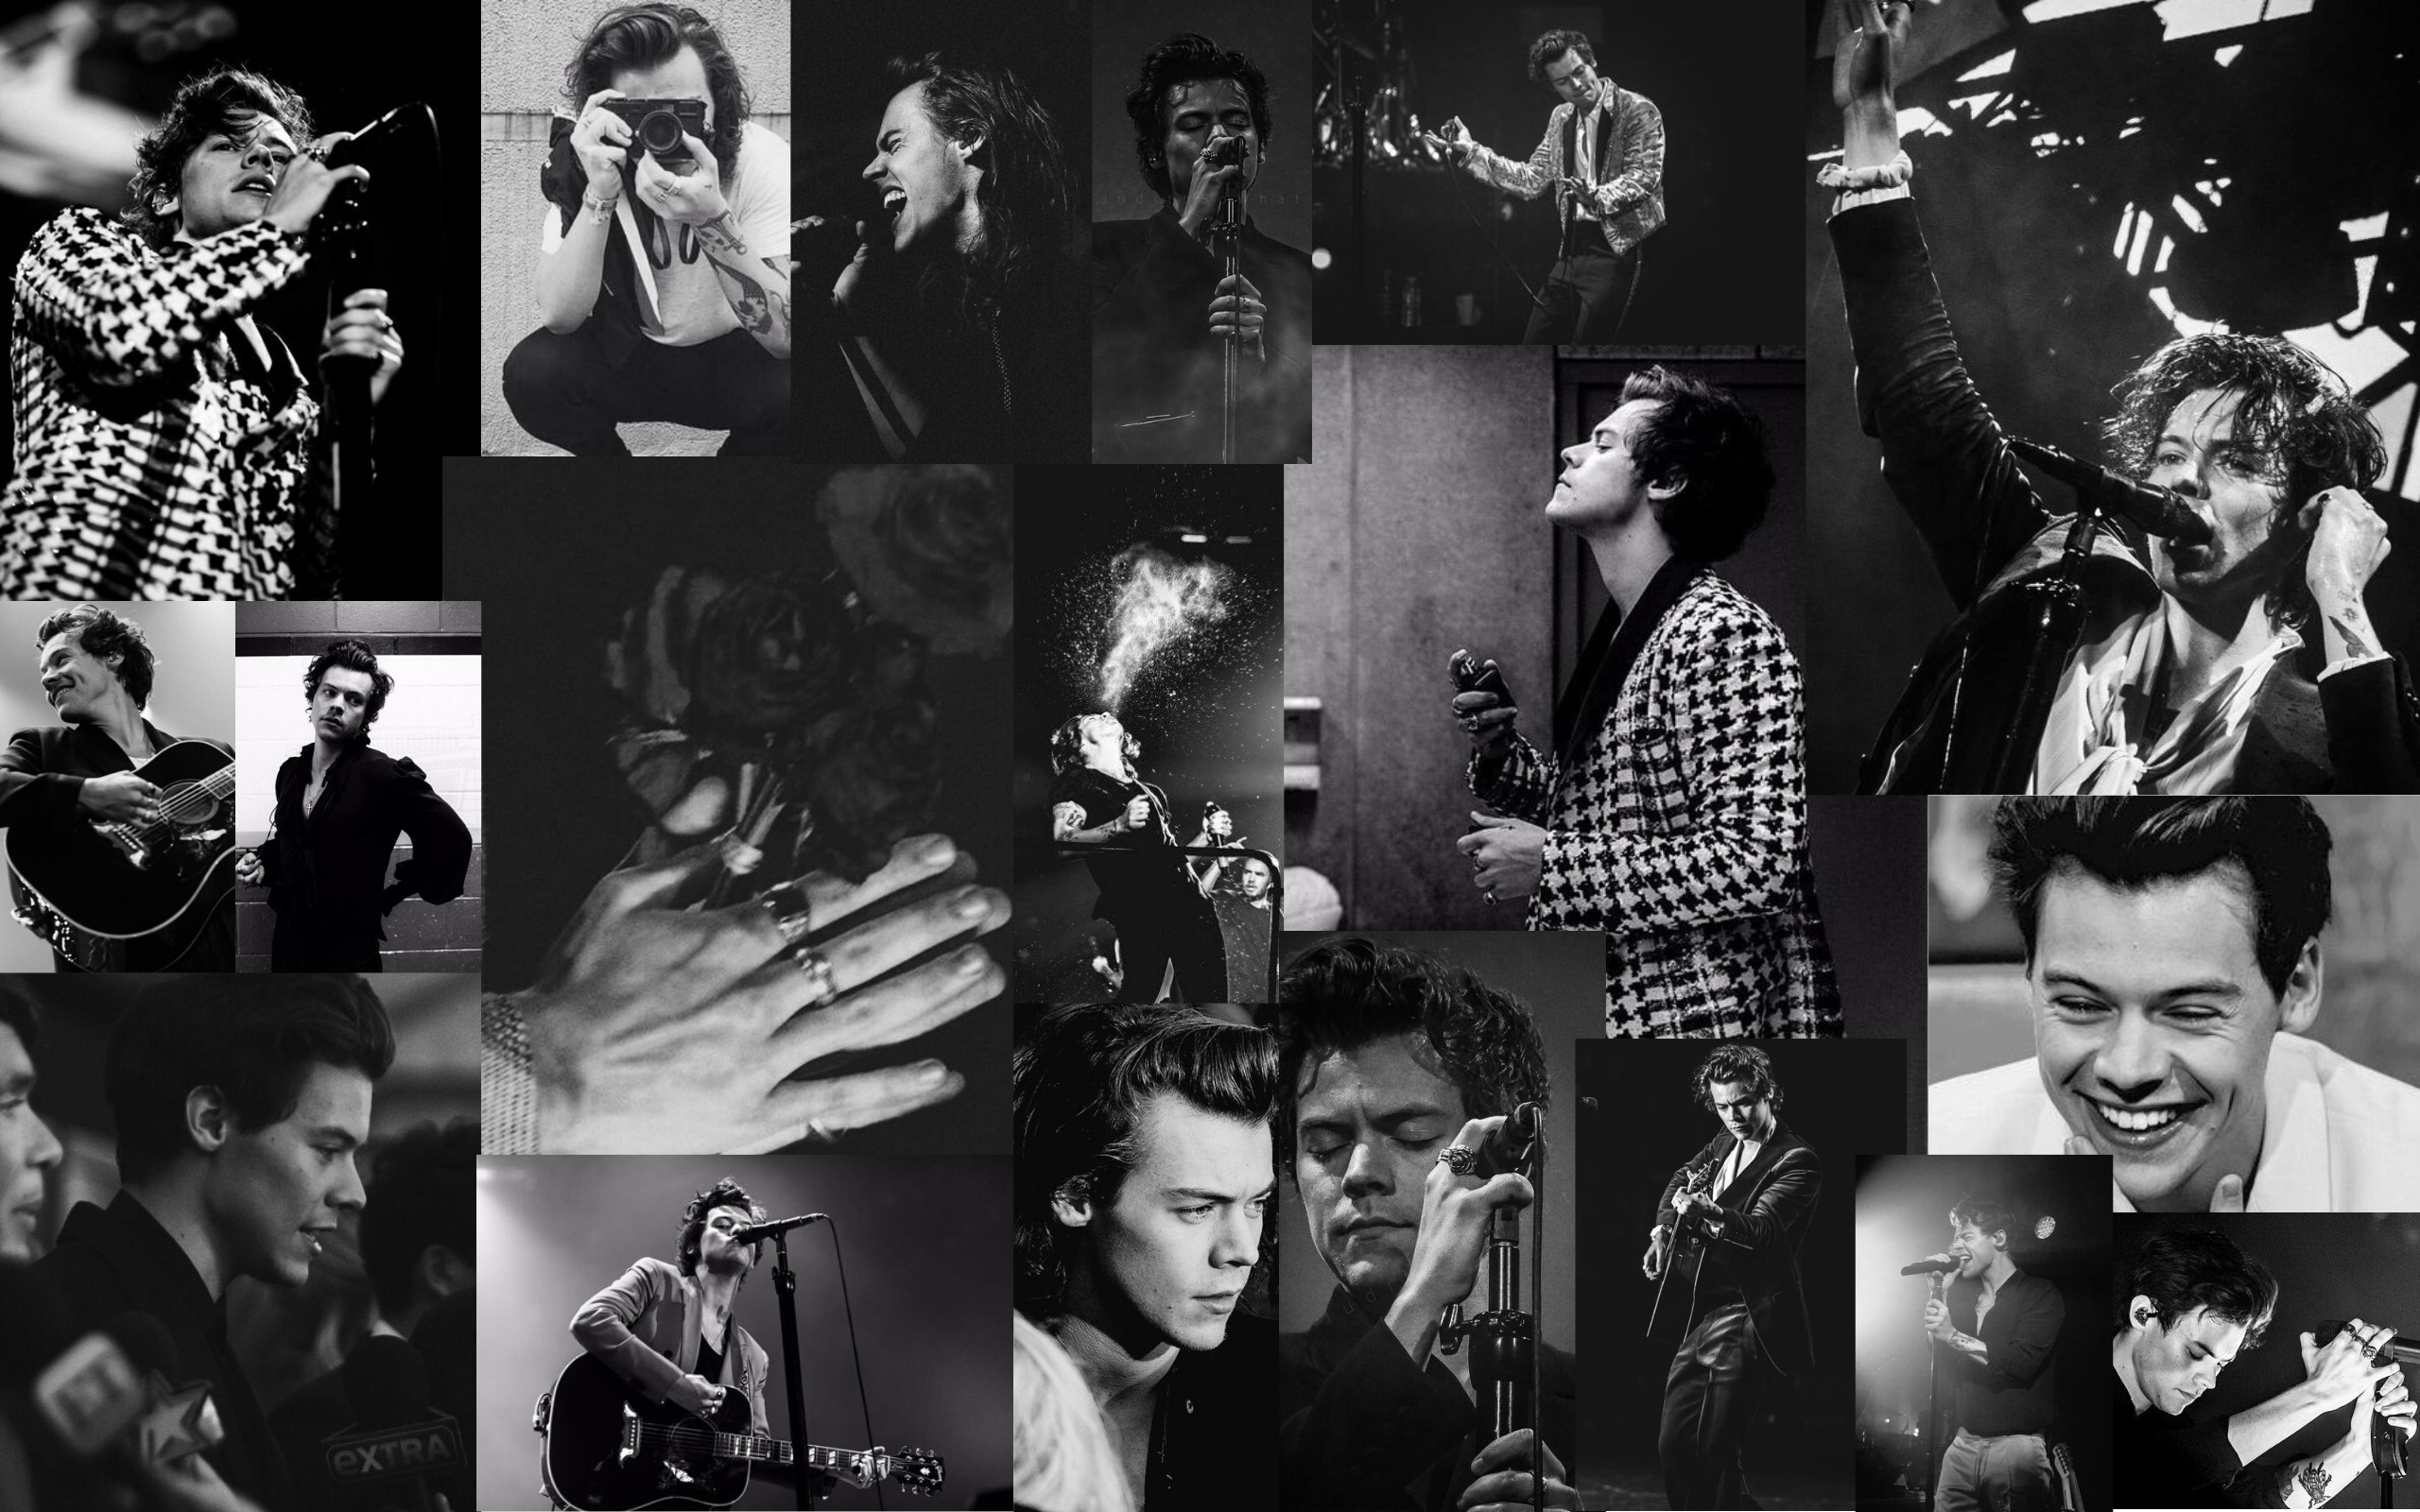 Black And White Harry Styles Wallpaper Background In 2020 Harry Styles Wallpaper Macbook Wallpaper Harry Styles